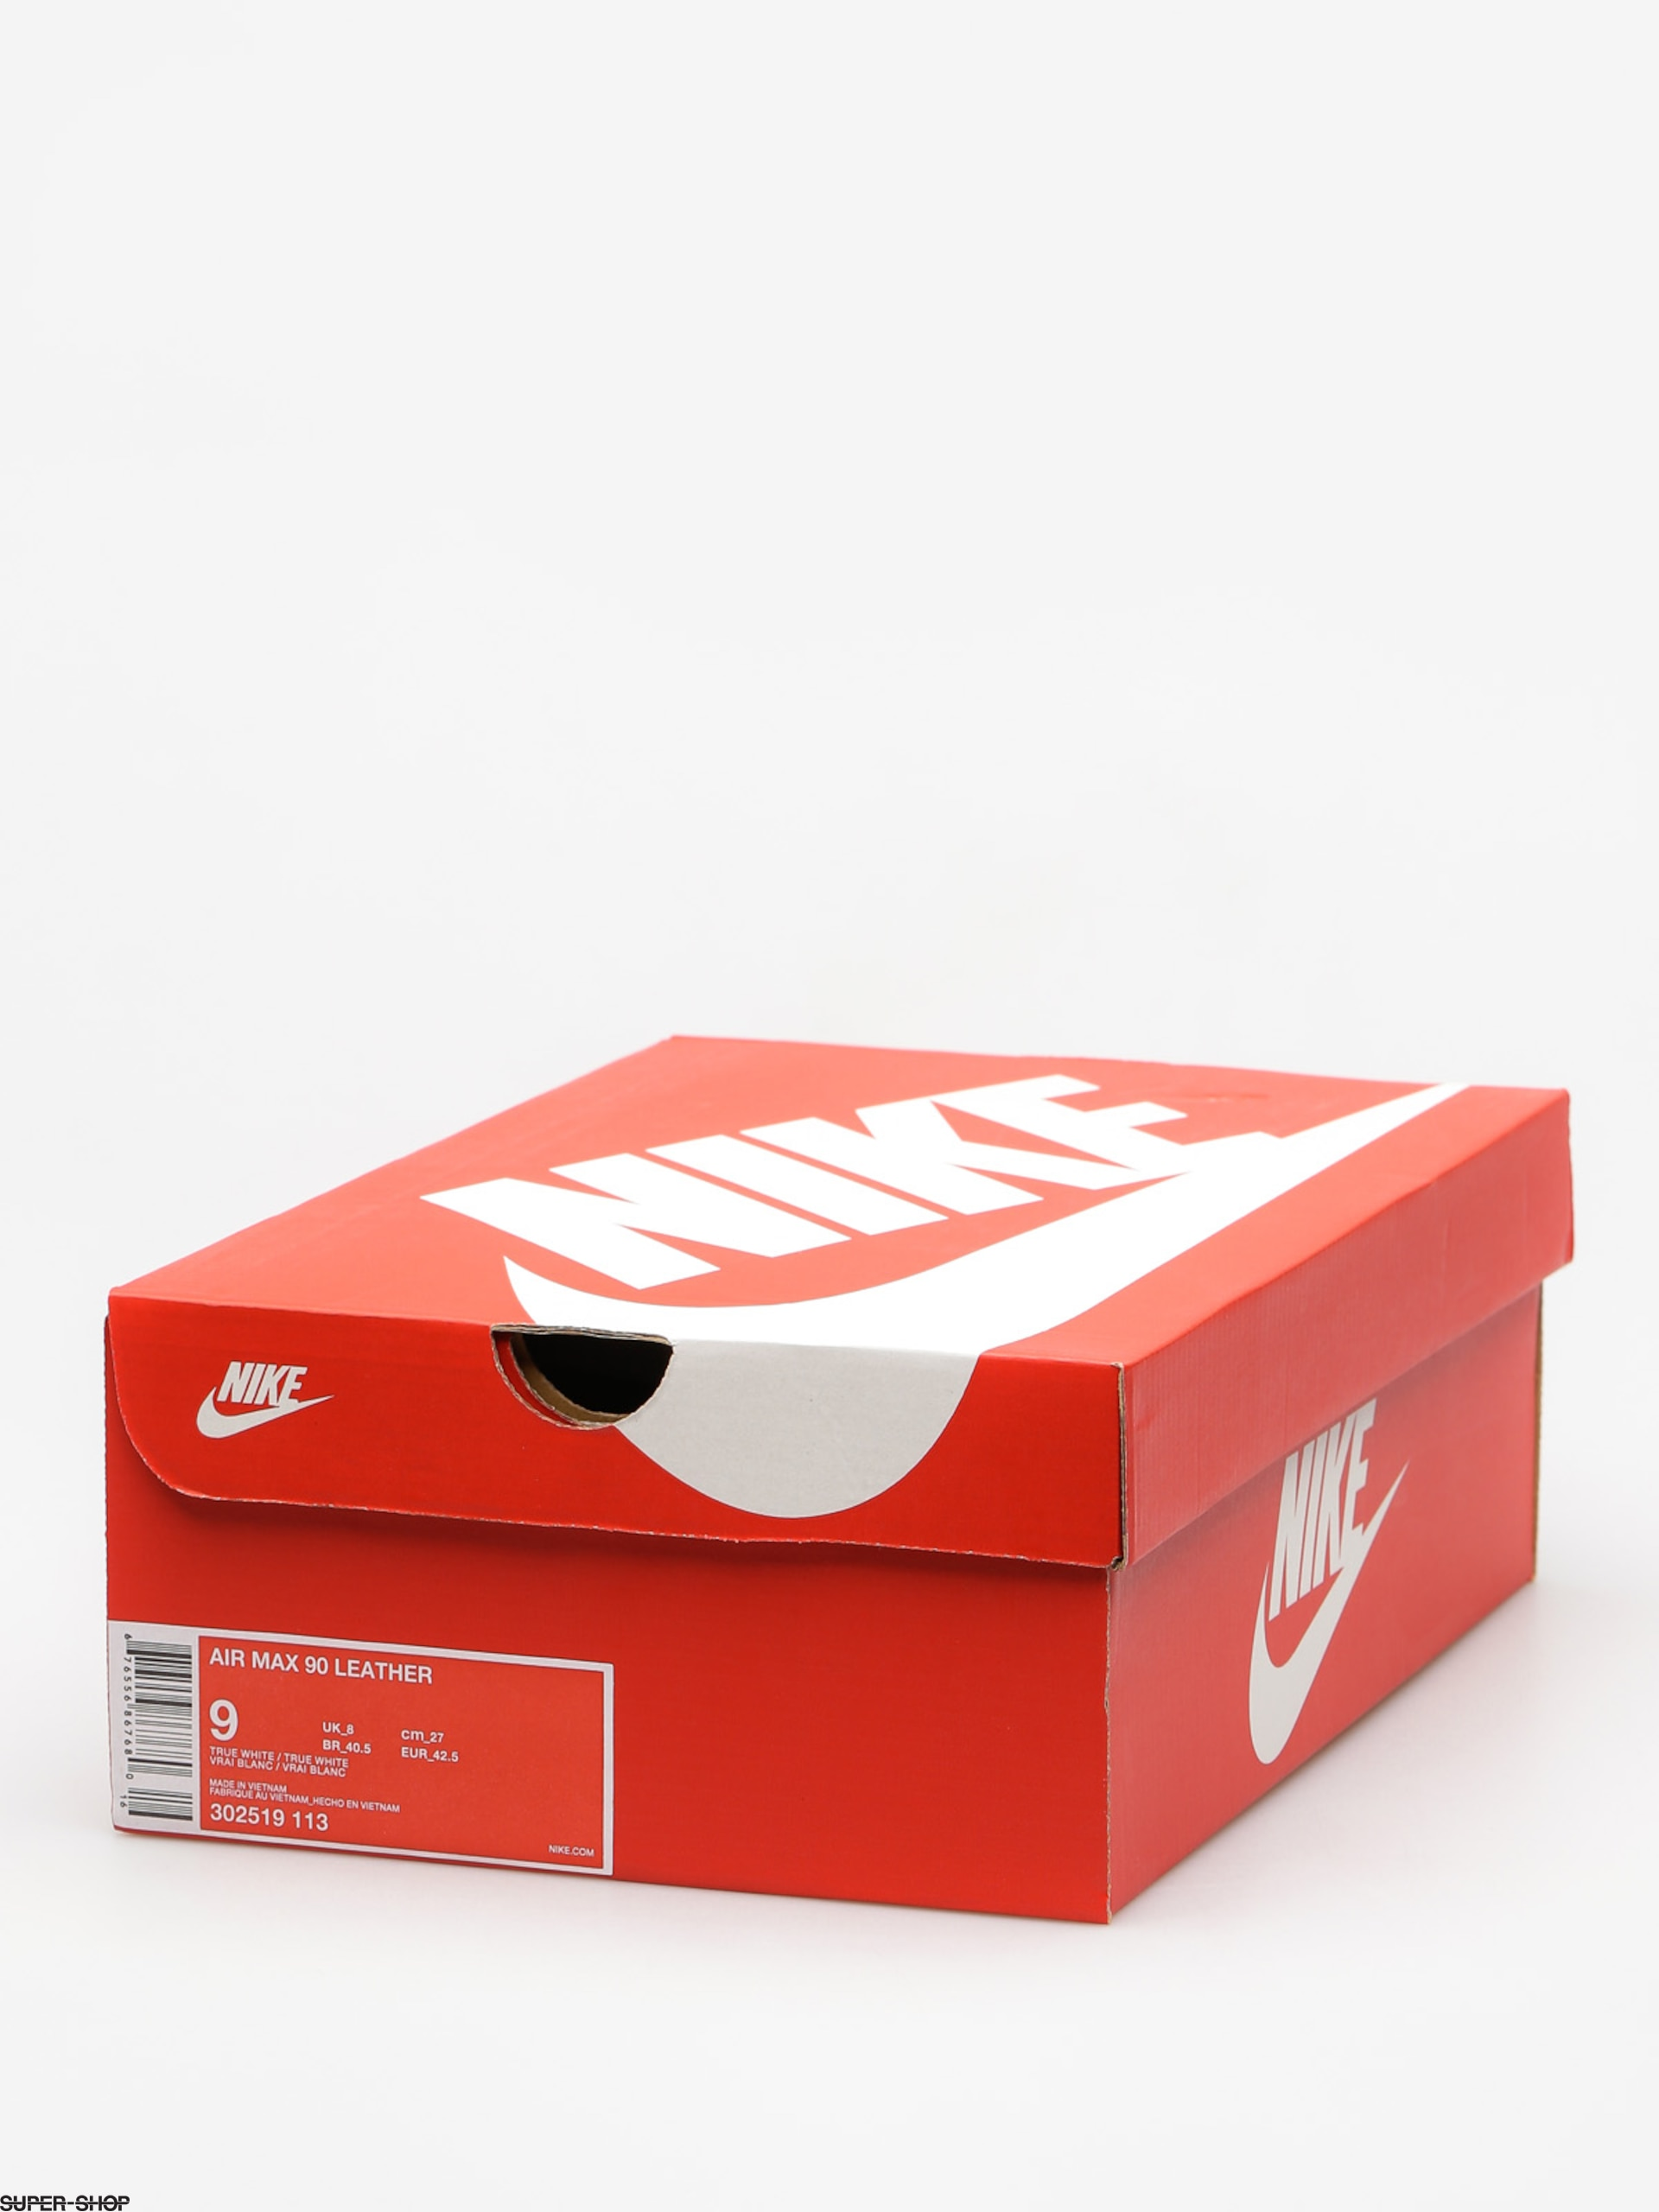 Nike Air Max 90 Shoes (Leather whitewhite)